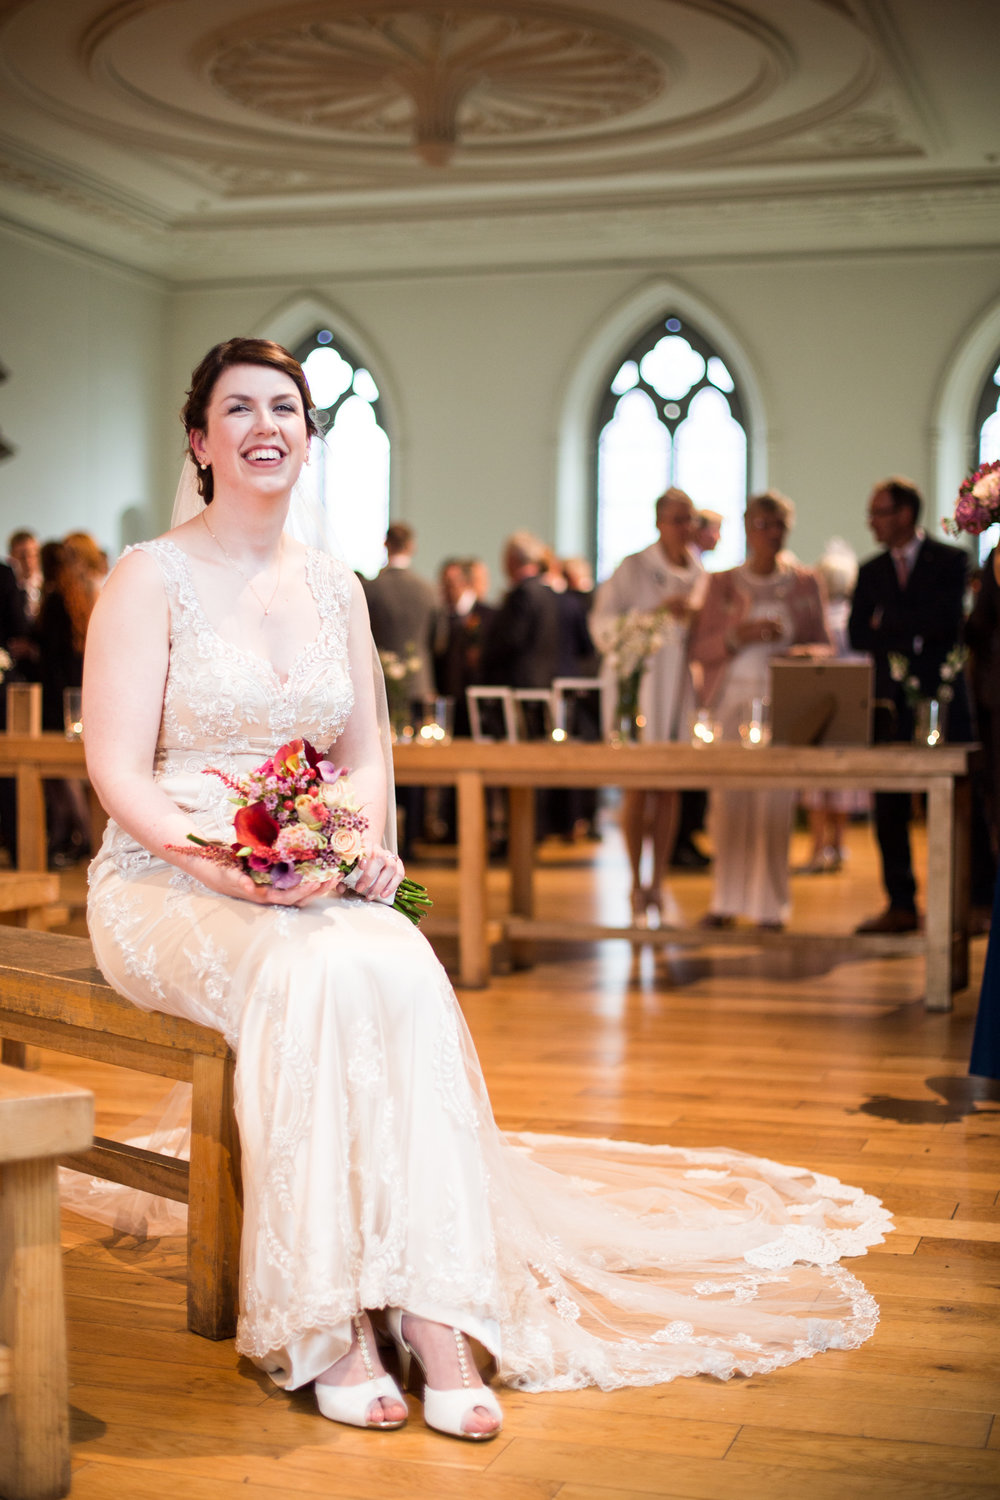 Wedding_Photography_Ireland_Smock_Alley_Theatre-68.jpg